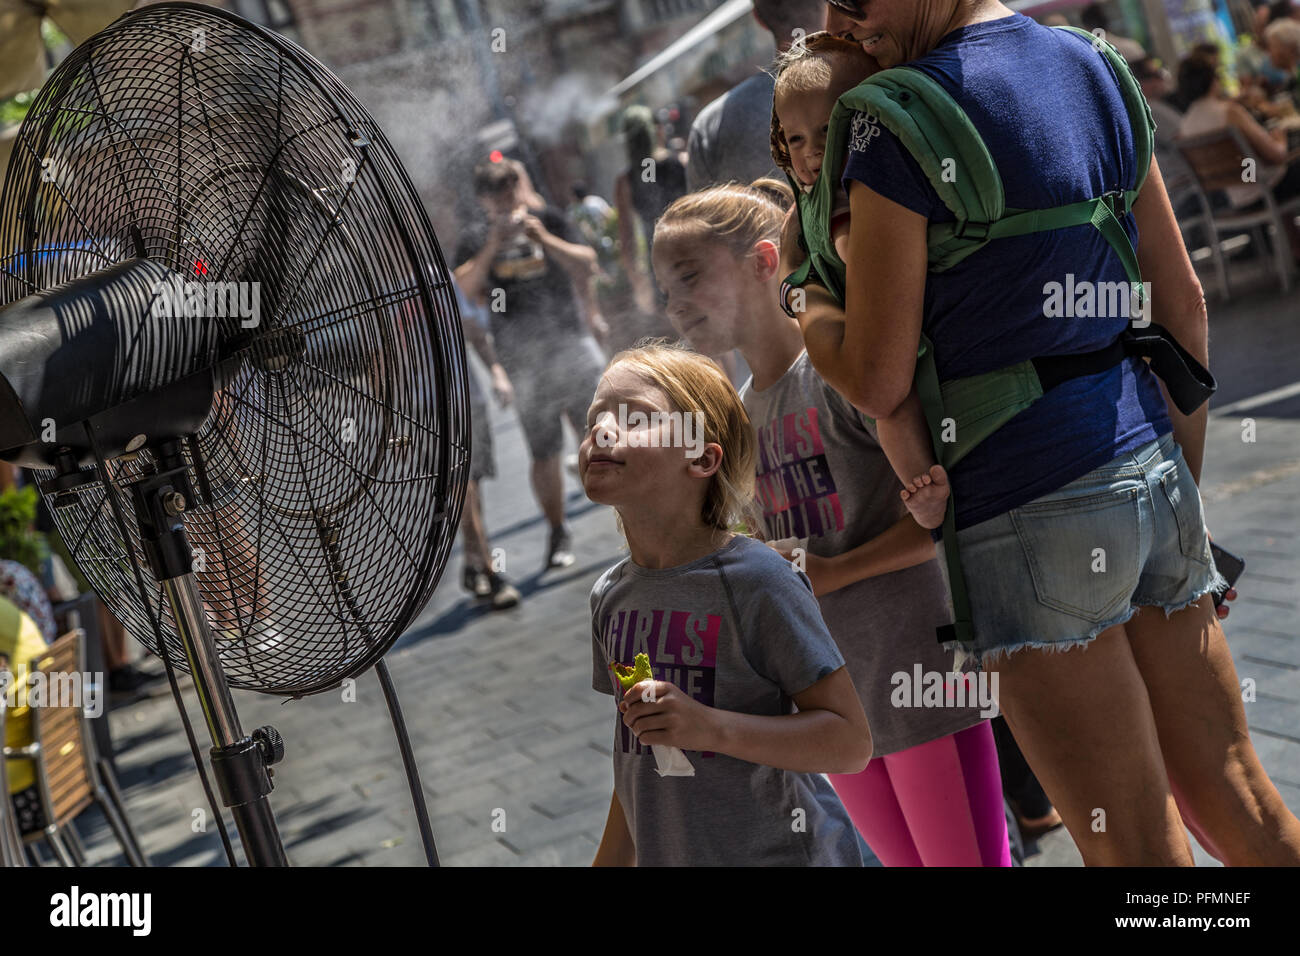 BUDAPEST,HUNGARY-AUGUST 09,2018:People alleviate the summer heat wave in front of the water spraying fan at the street of downtown. - Stock Image